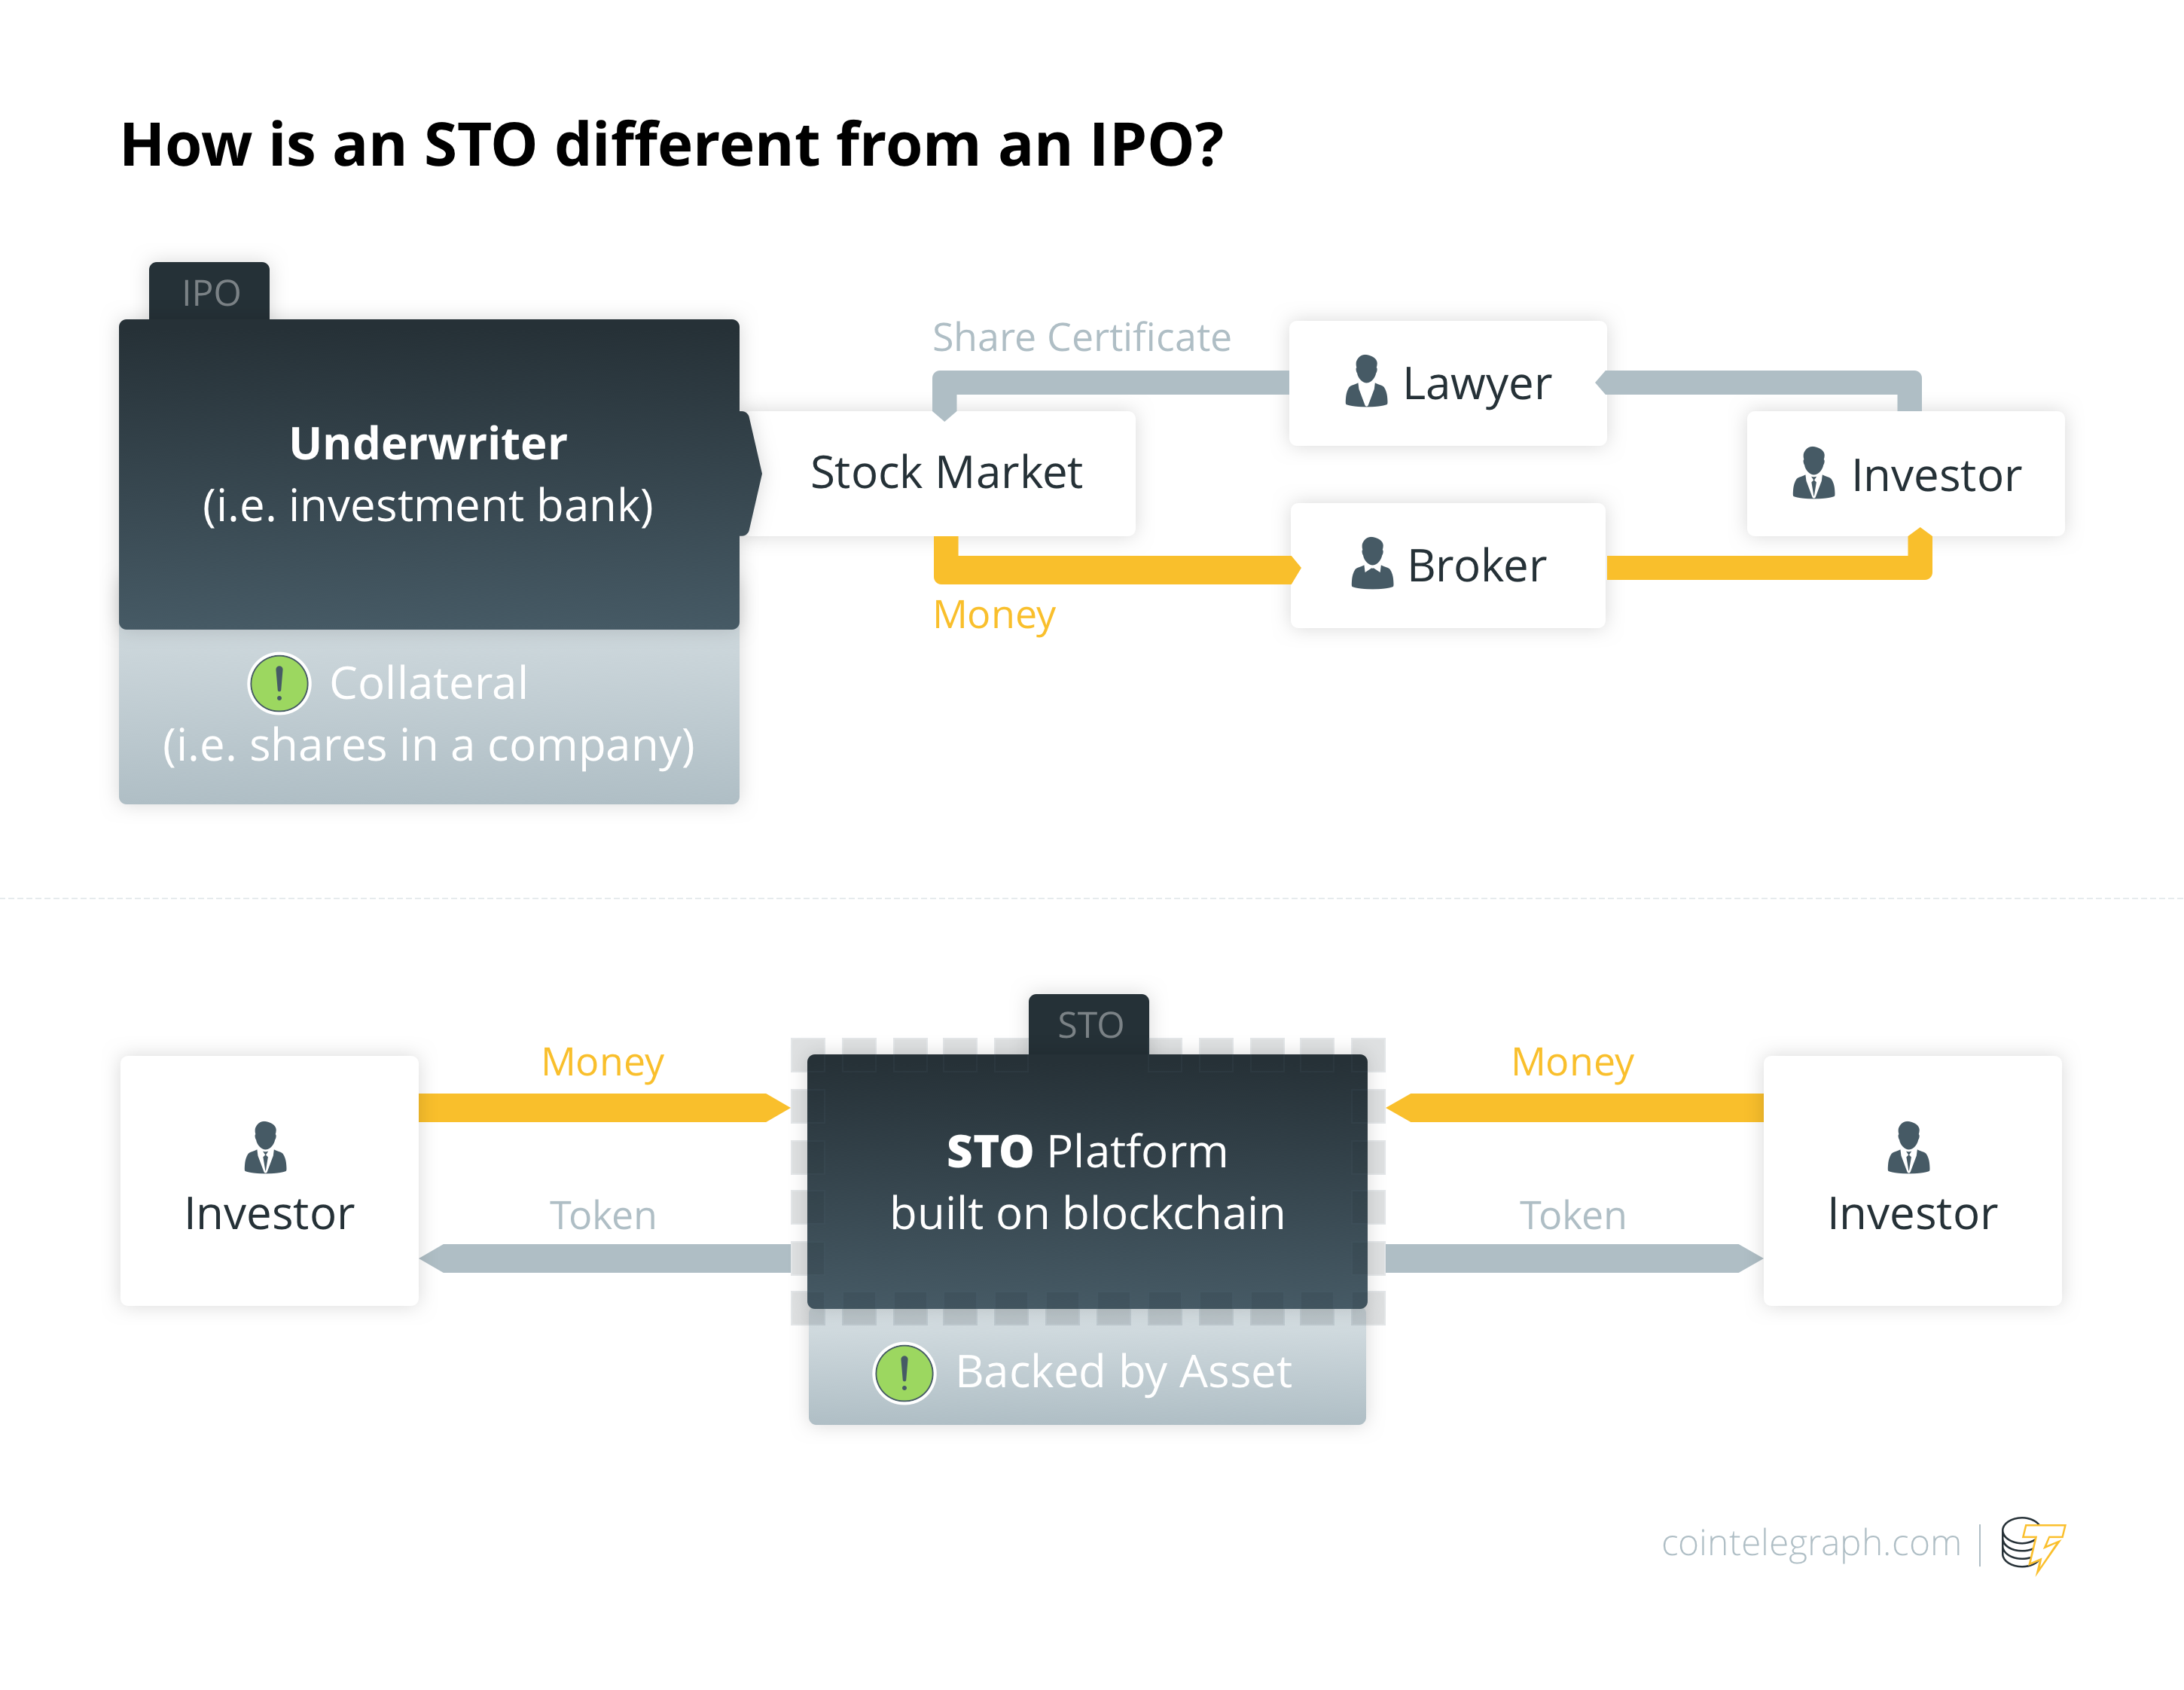 How is an STO different from an IPO?